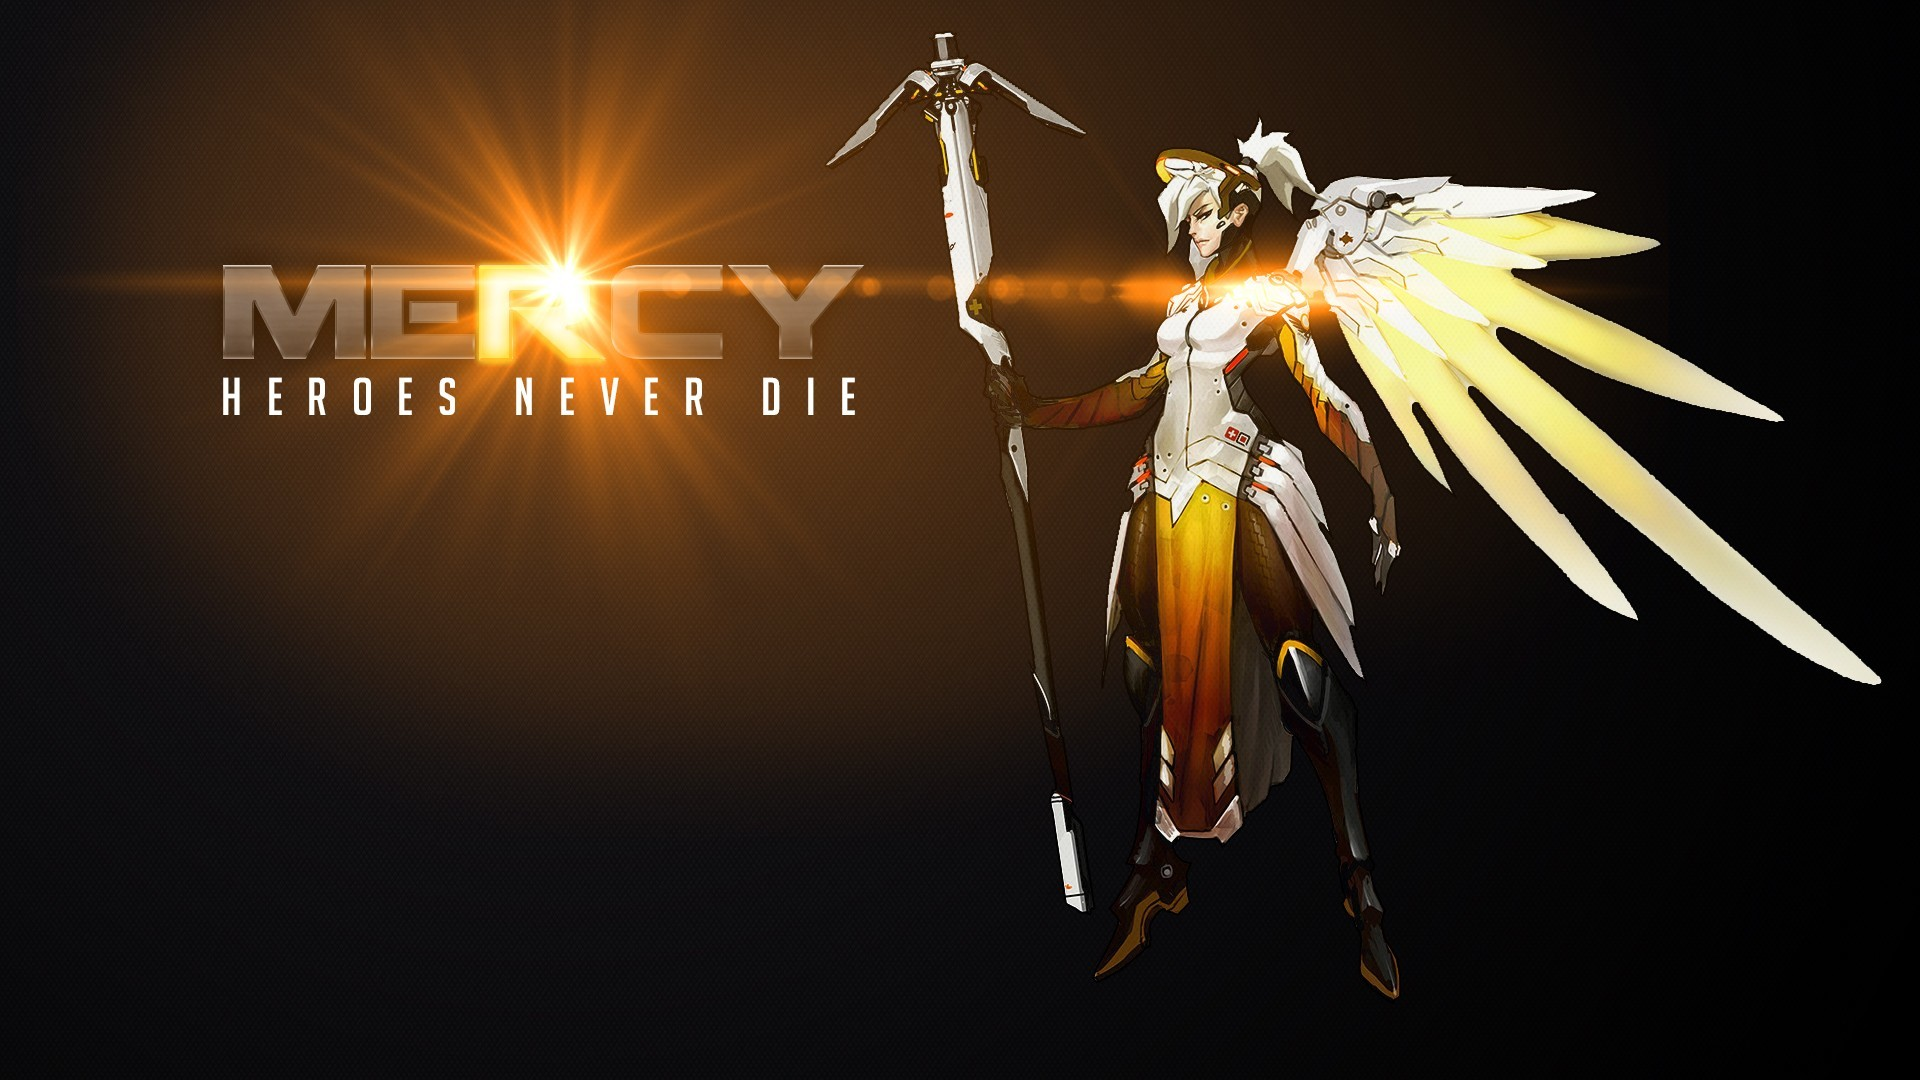 1920x1080 Overwatch, Blizzard Entertainment, Mercy (Overwatch) Wallpapers HD /  Desktop and Mobile Backgrounds